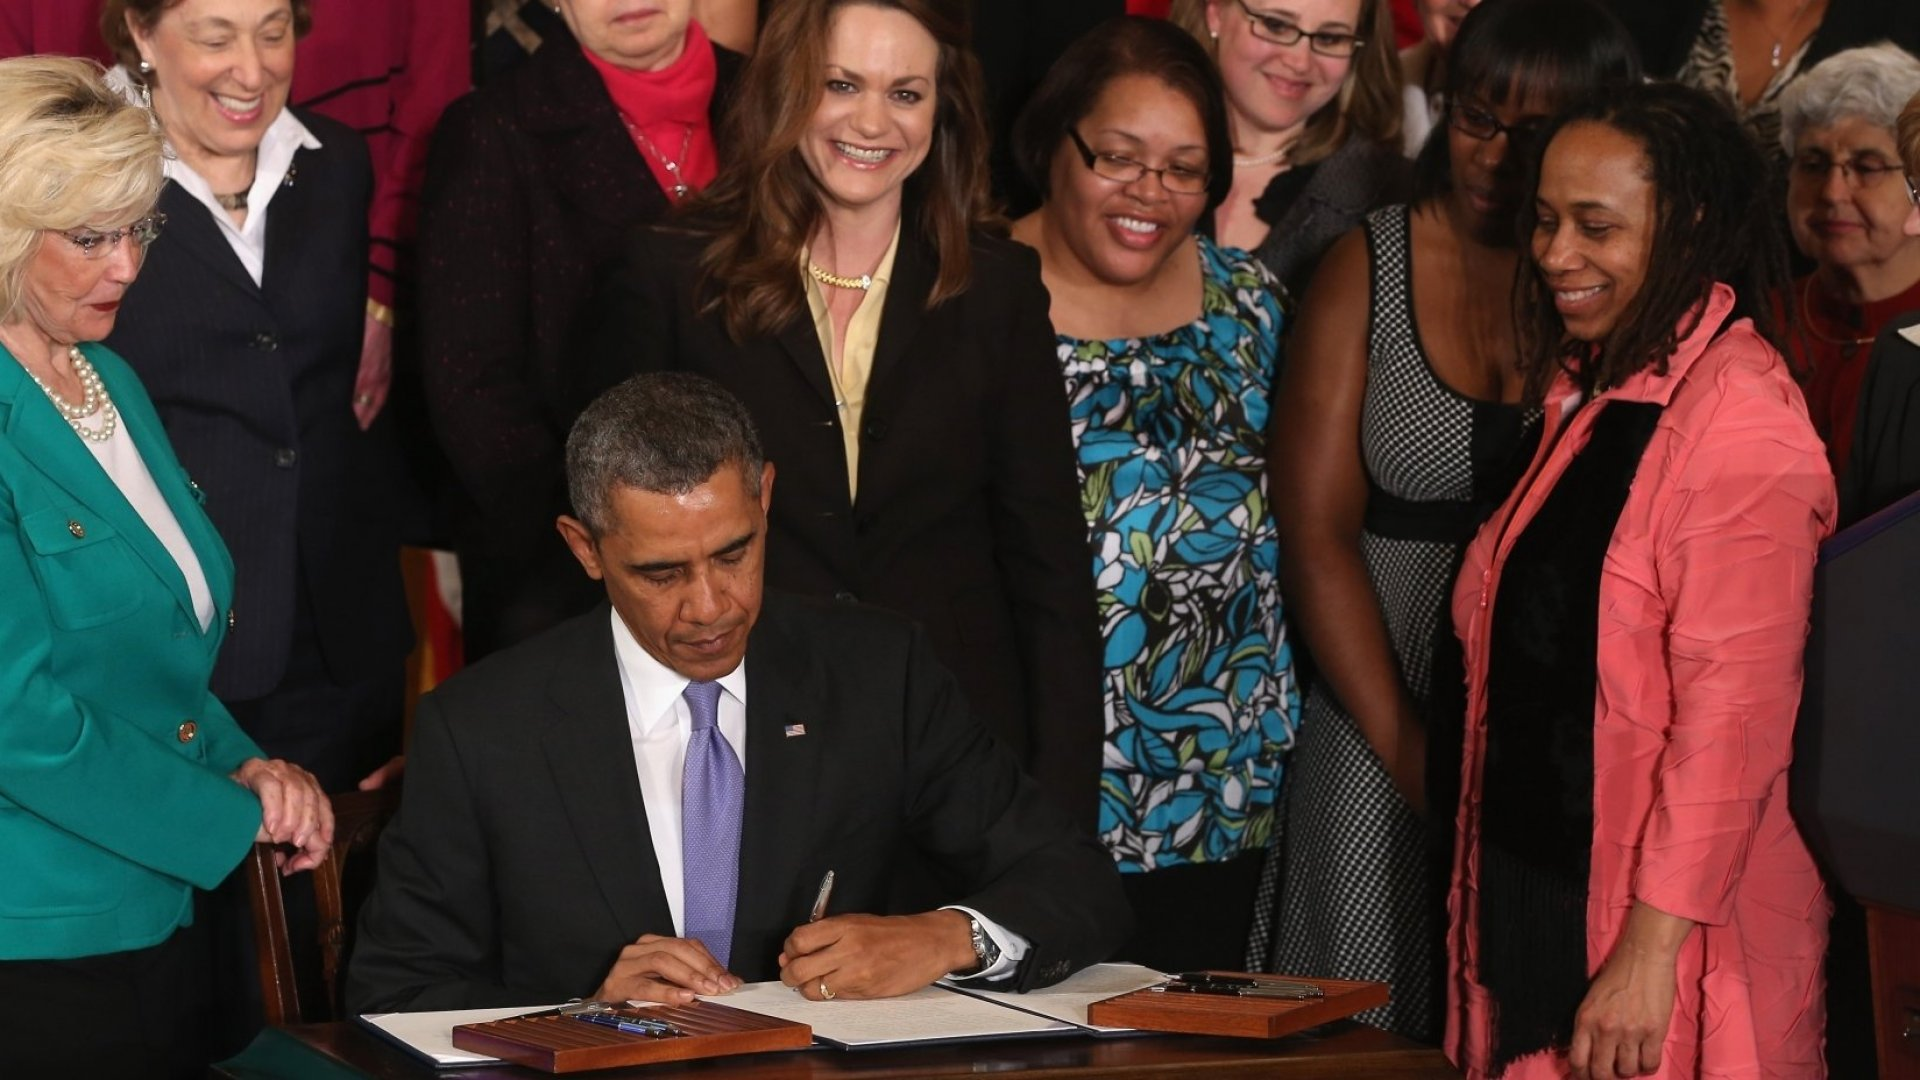 President Barack Obama signs a labor bill as women's right activist Lilly Ledbetter and other women look on.